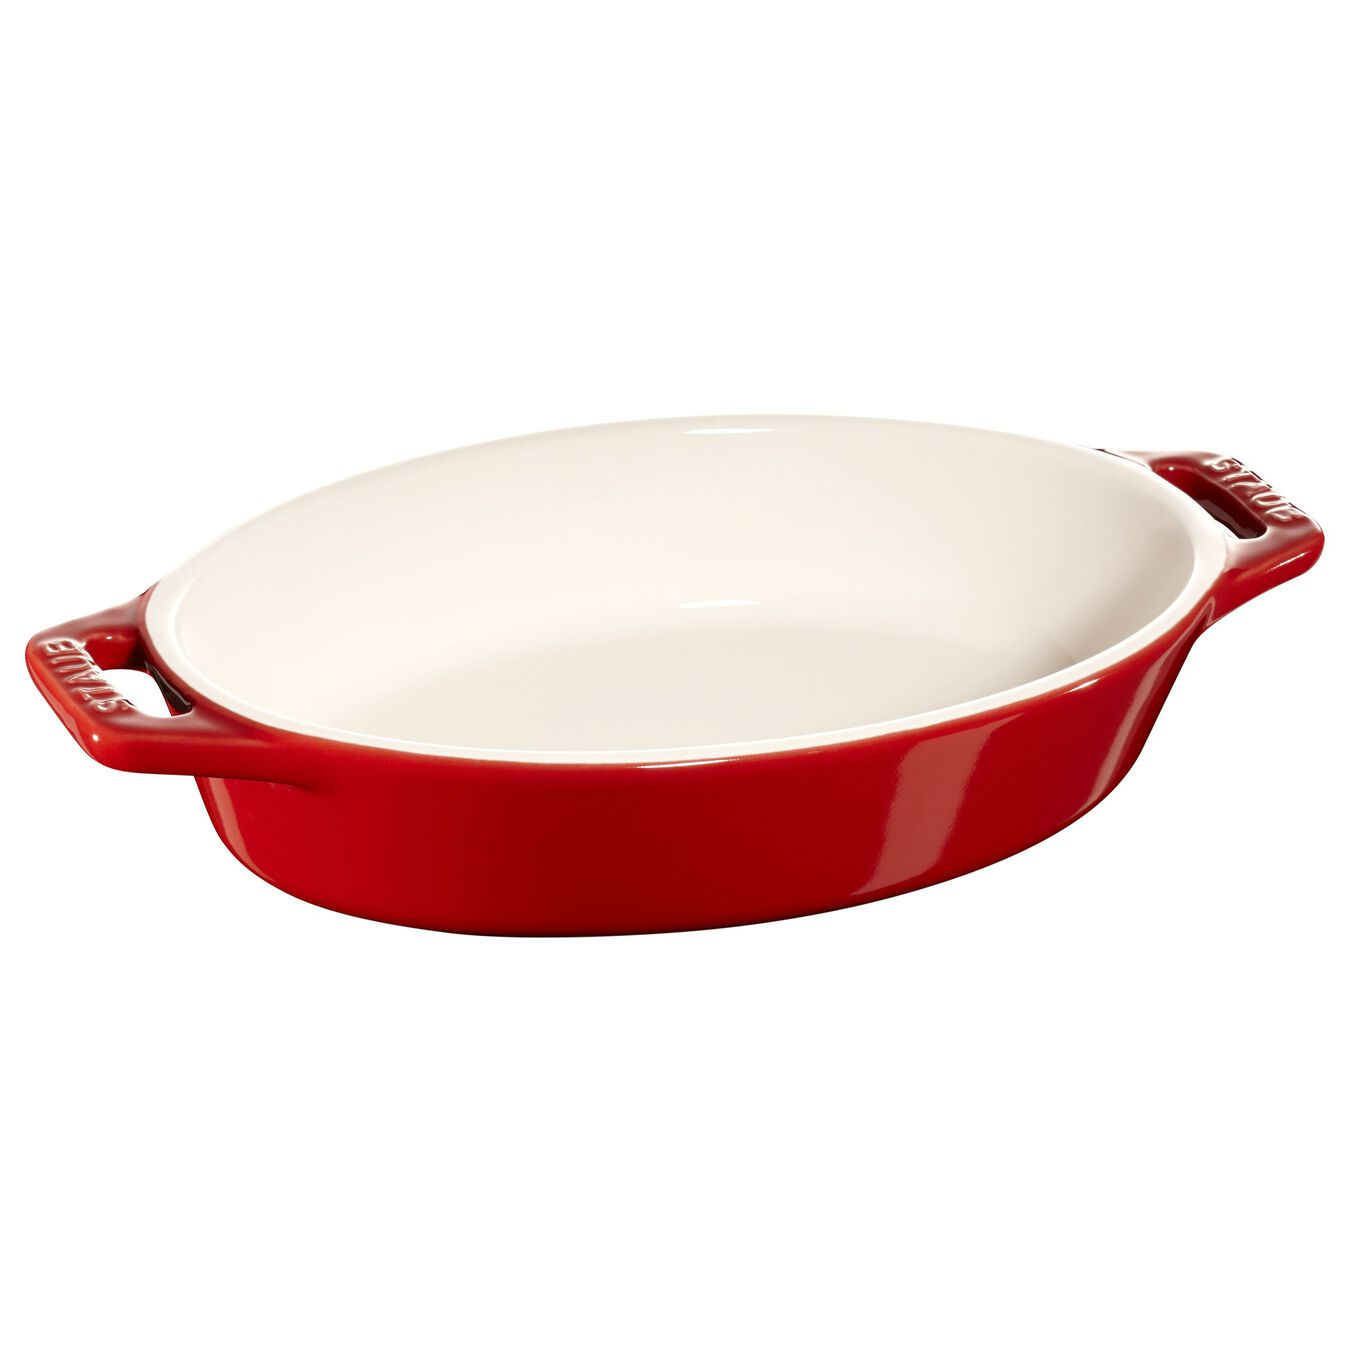 Ceramic oval Oven dish, Cherry,,large 1